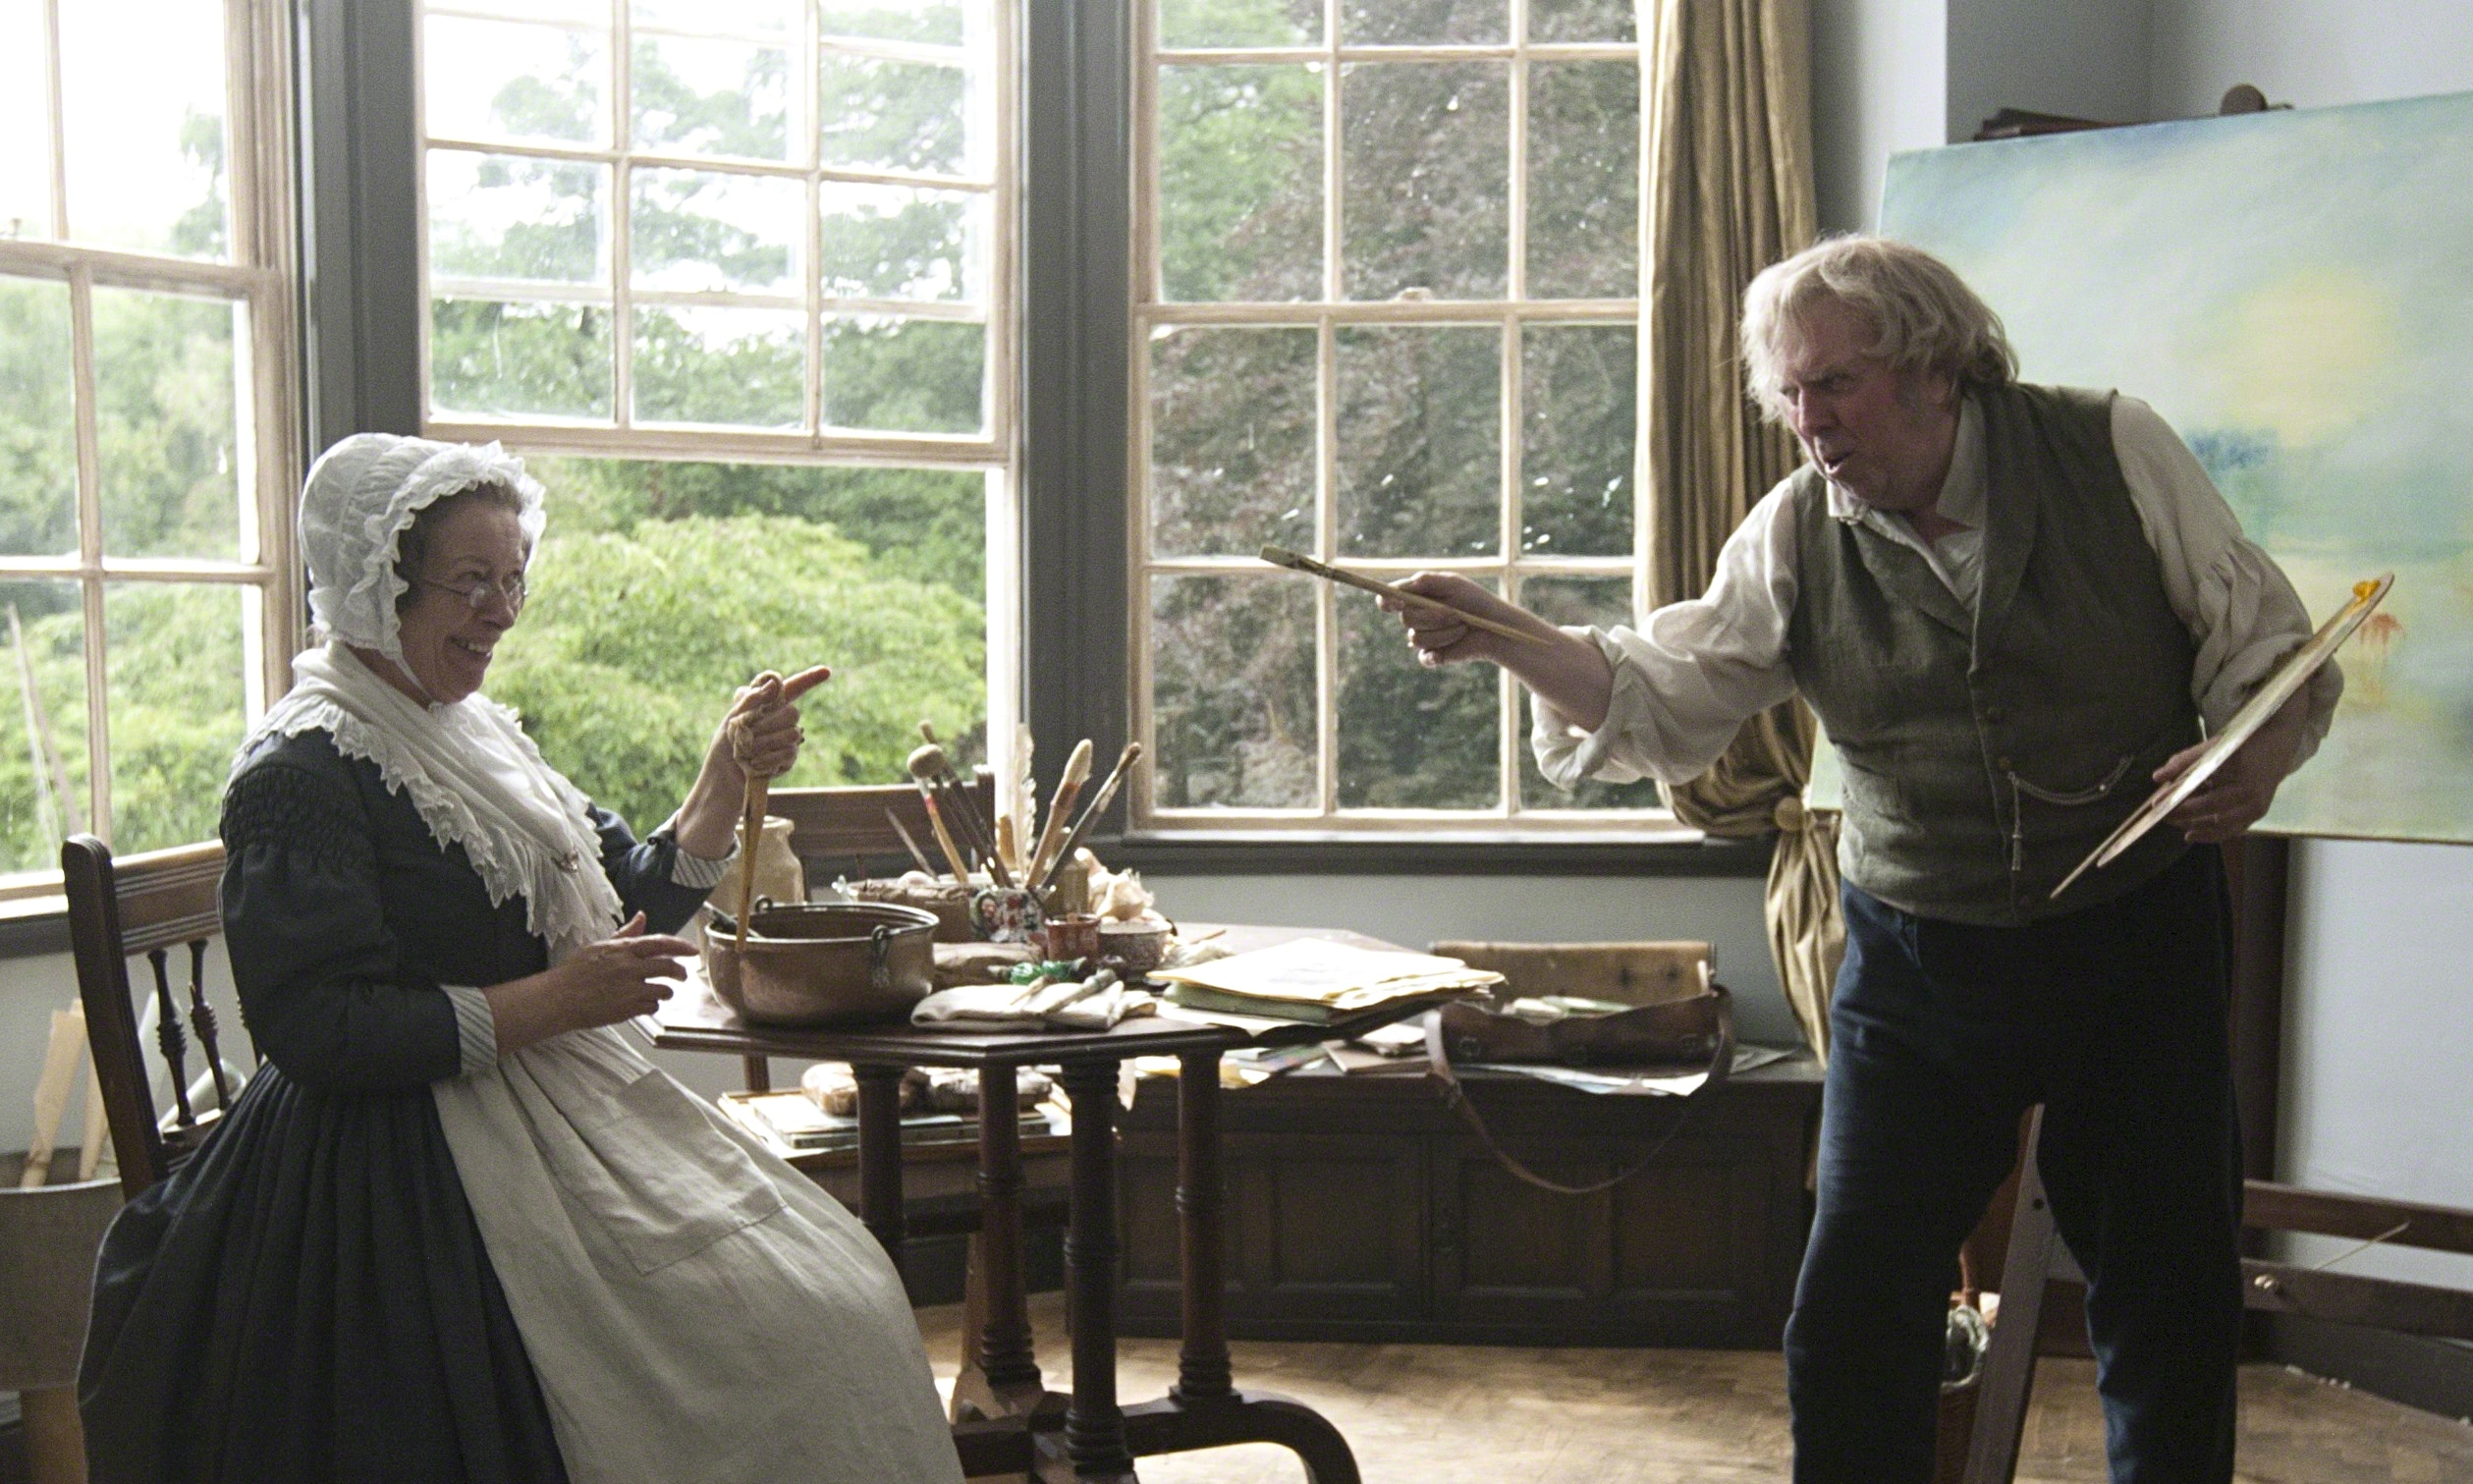 Mr-Turner-scene-from-film-012.jpg